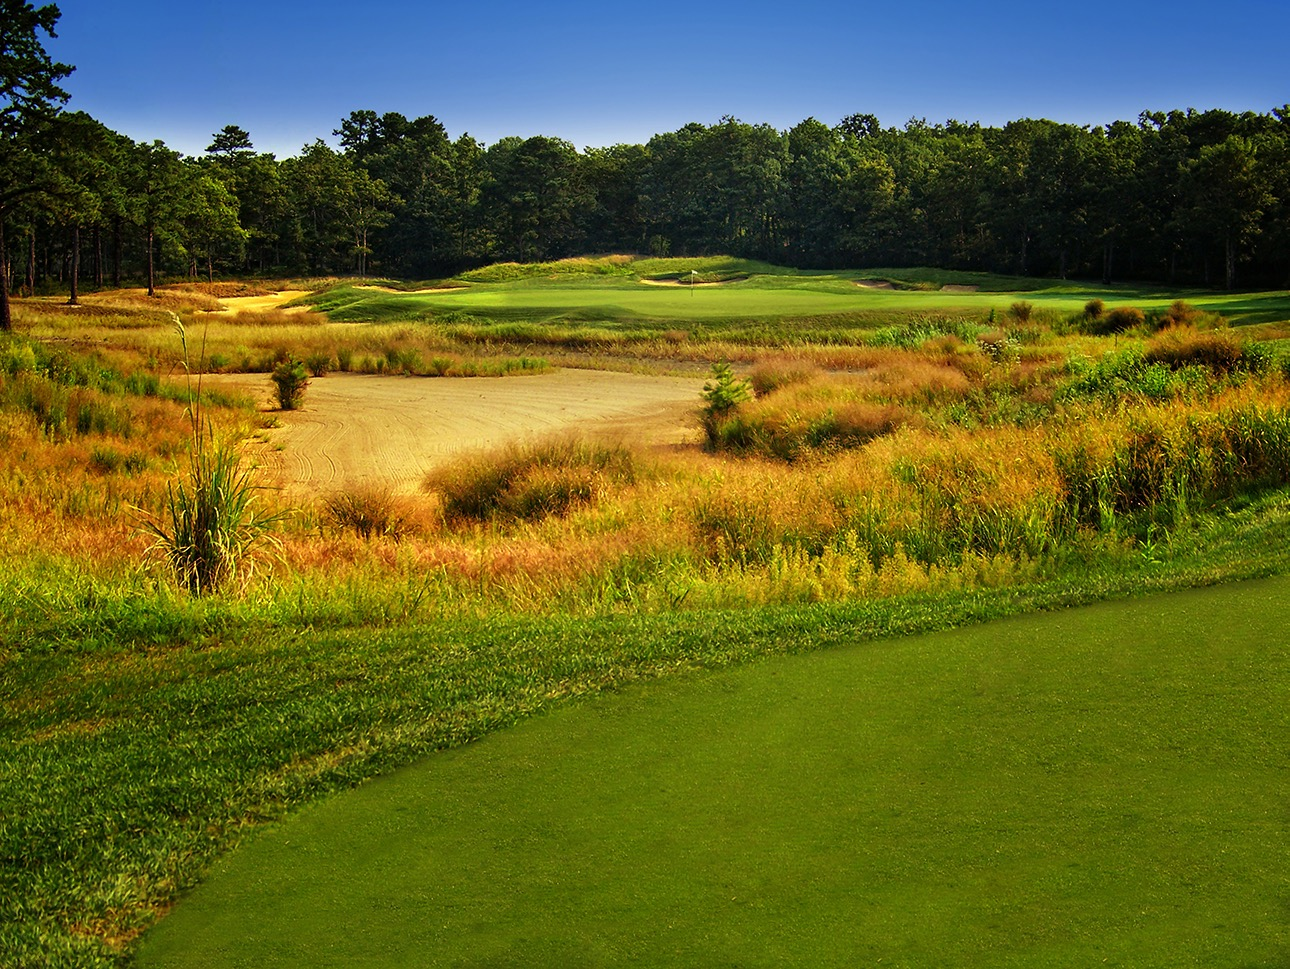 The Sea Oaks Golf course, Hole 7. Sea Oakes is on of the many reasons clubs trust Ray Hearn as one of the top golf course design firms.